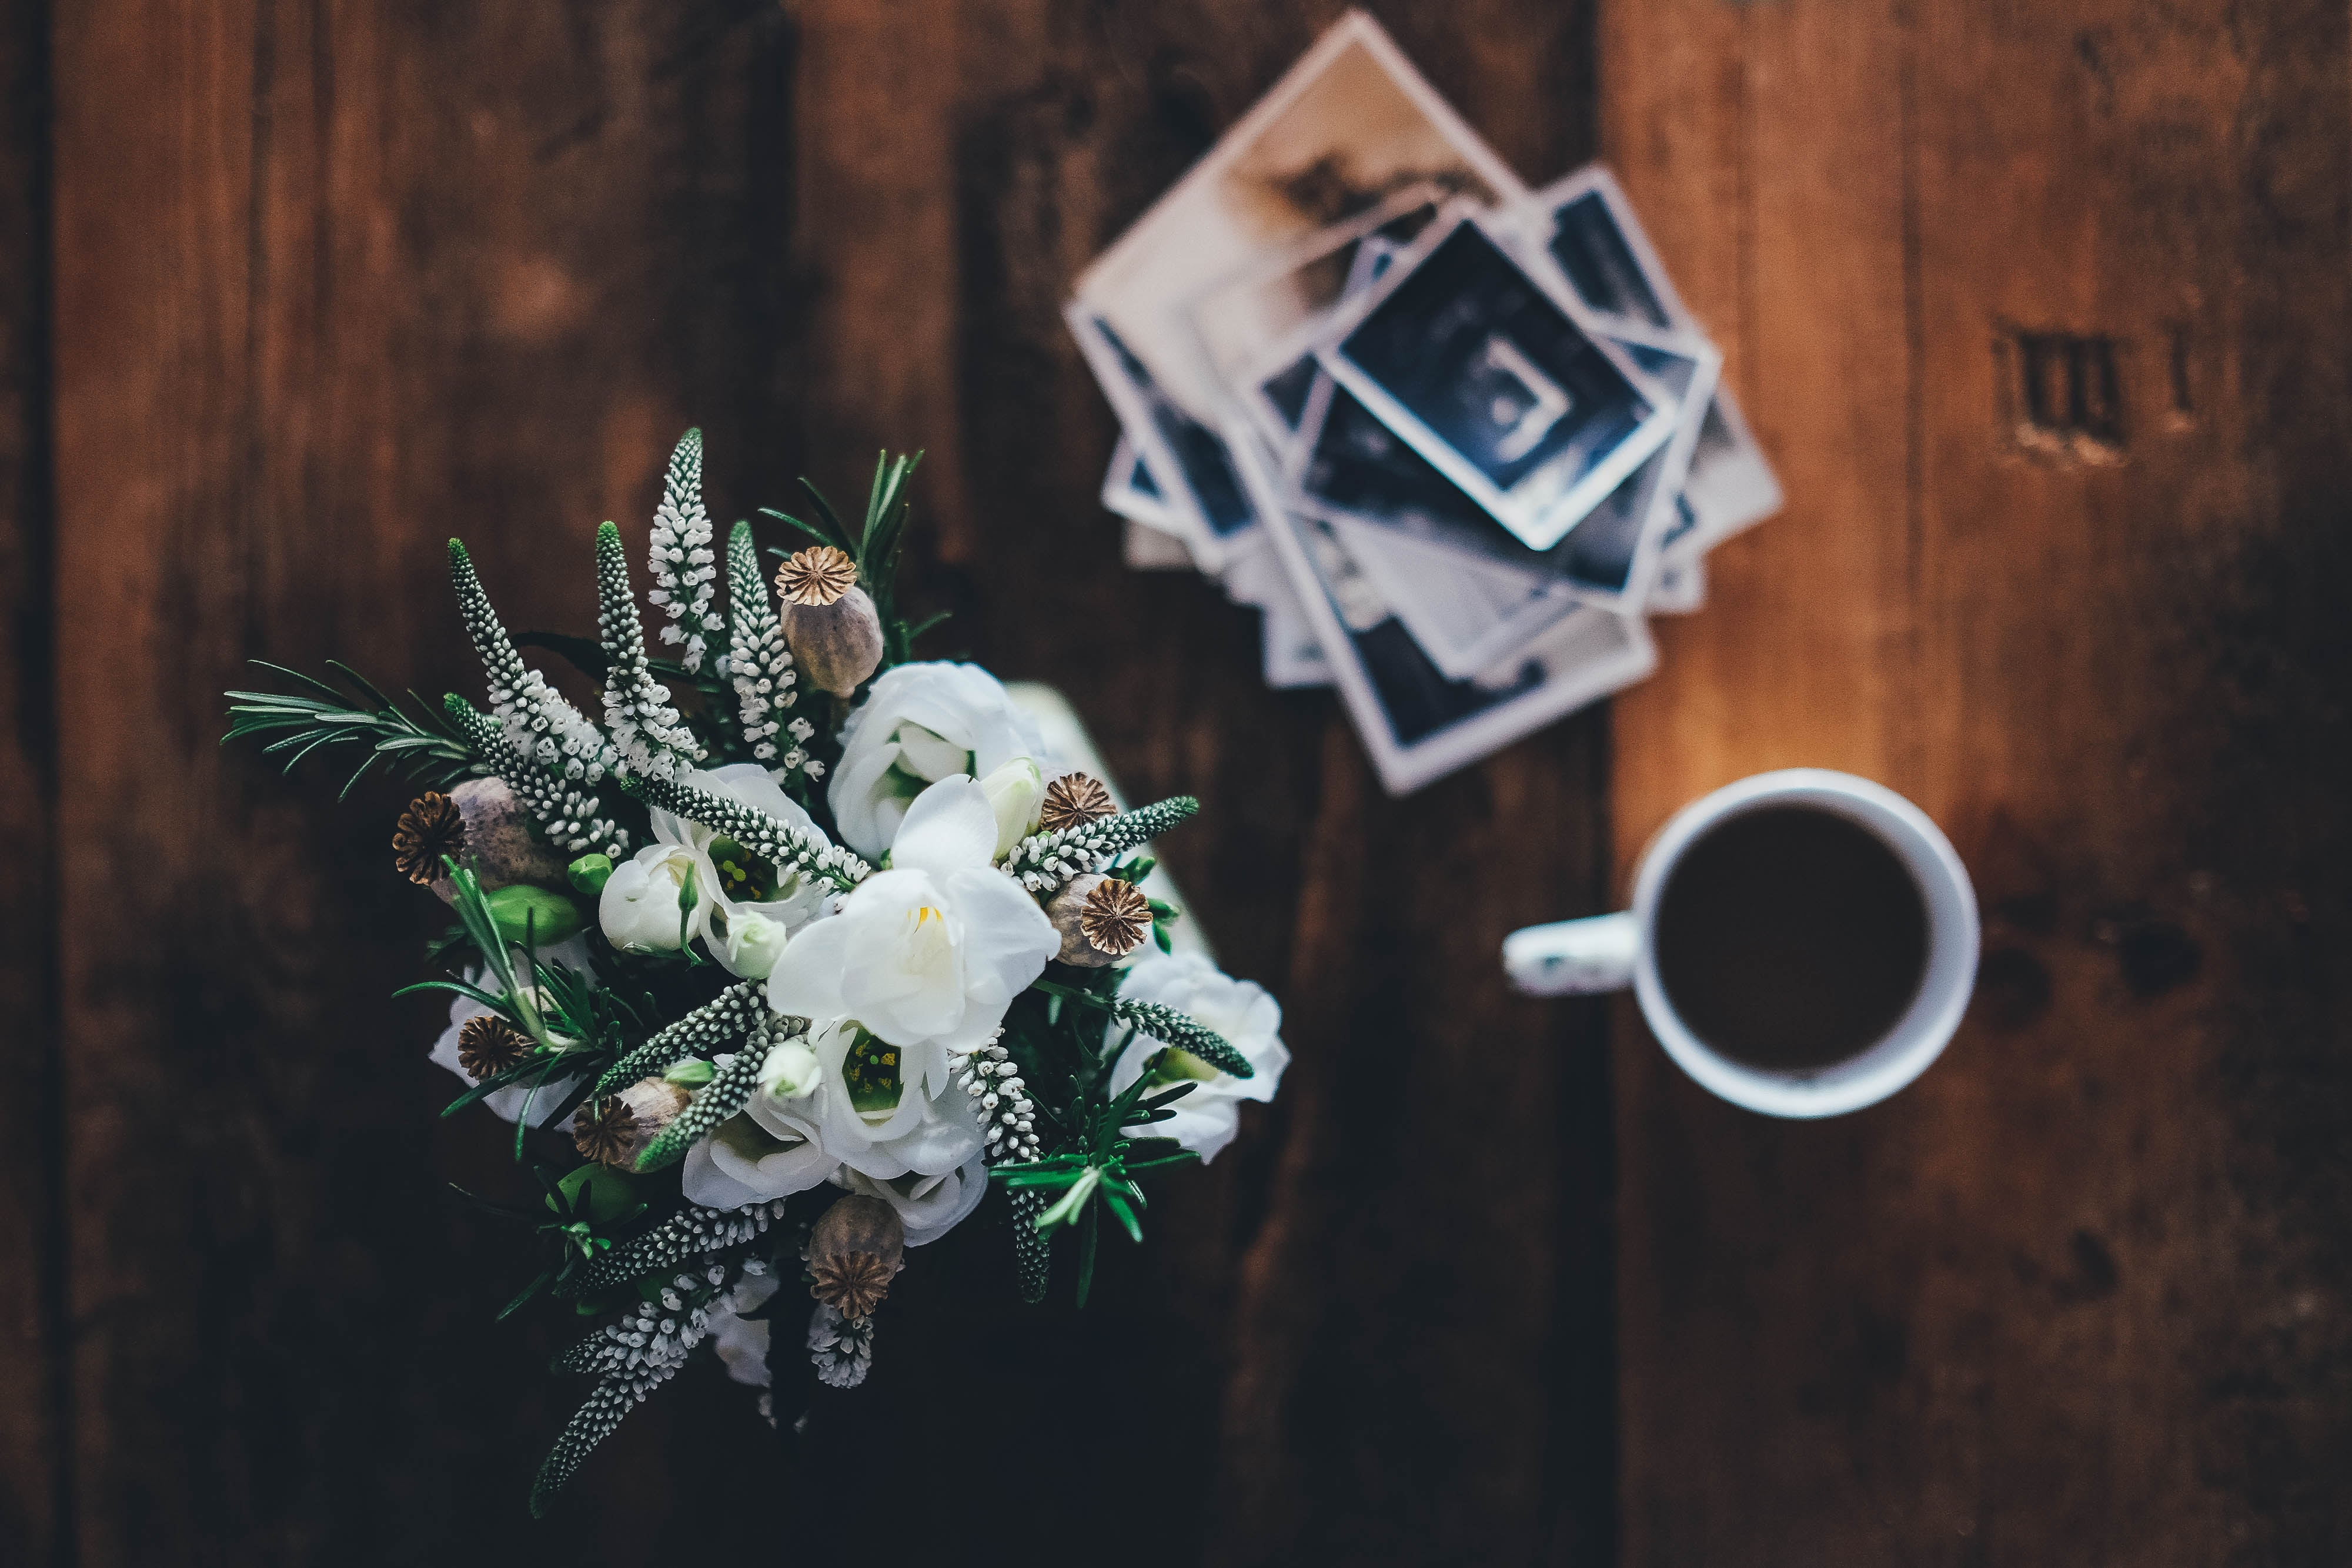 Coffee, flowers and photos